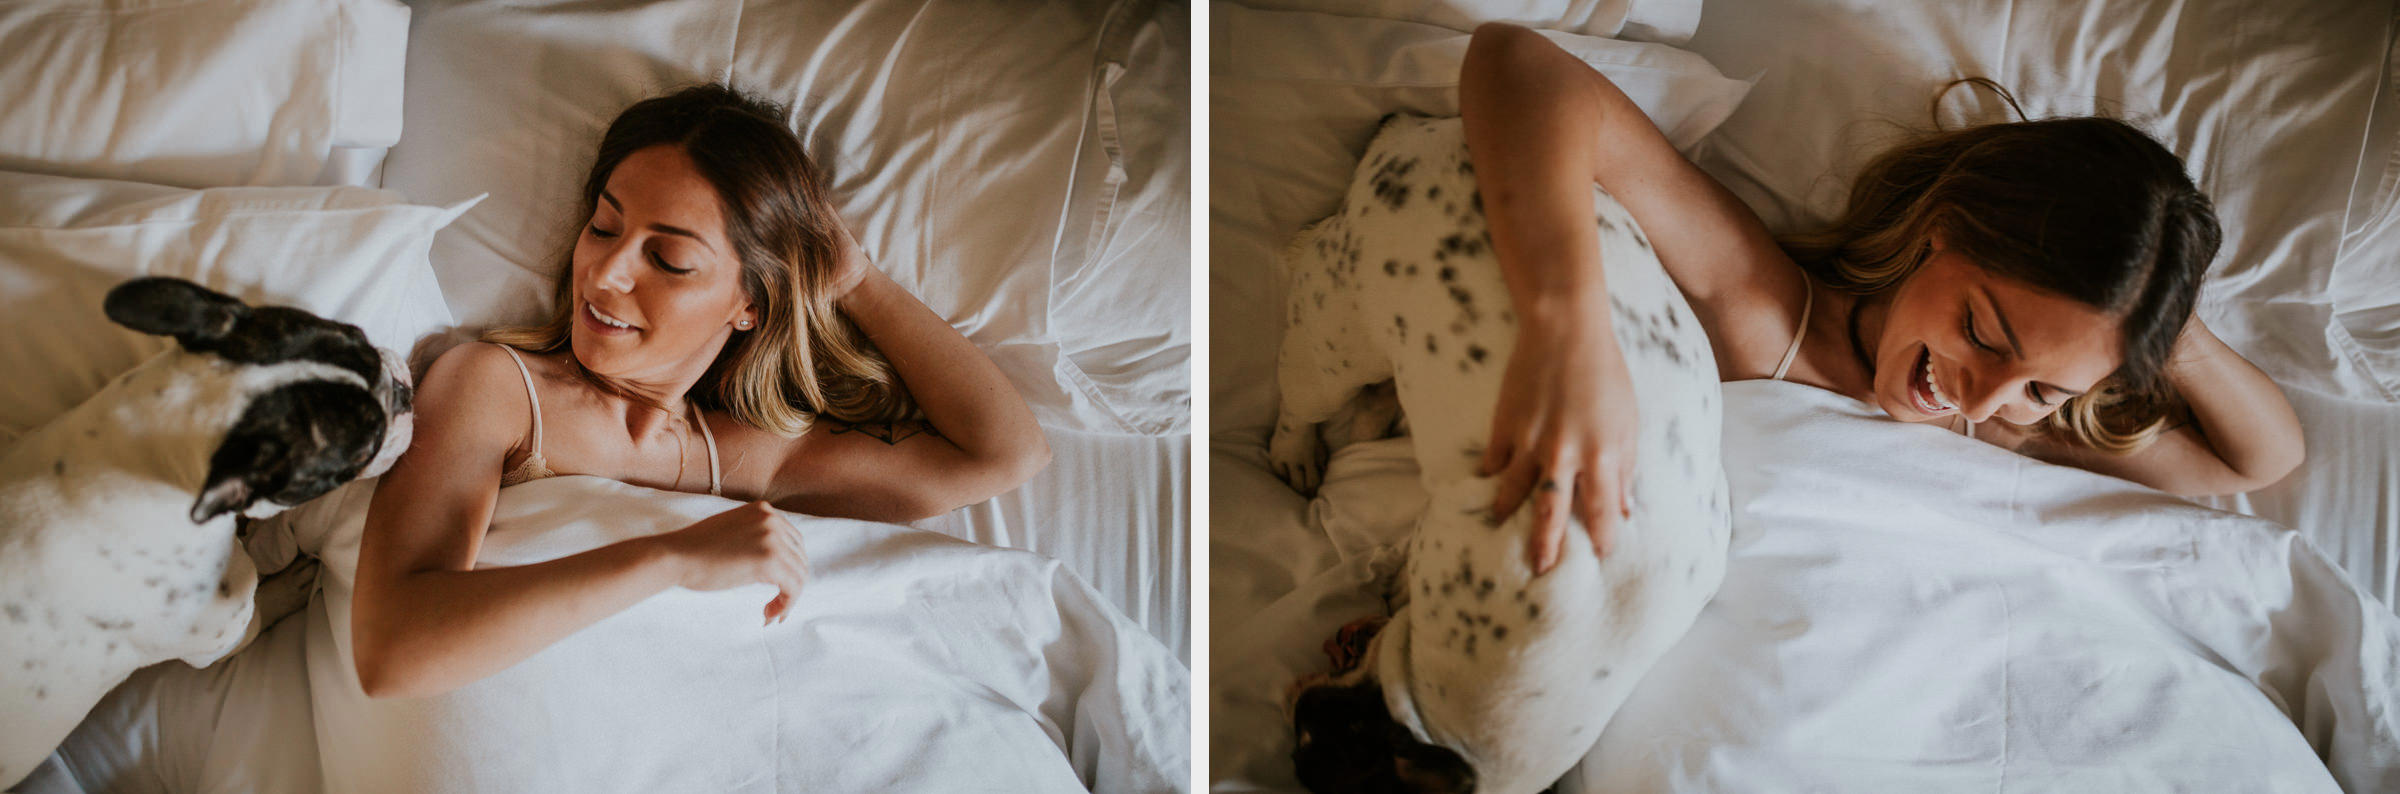 two photo montage of a girl on her bed having fun with her french bulldog